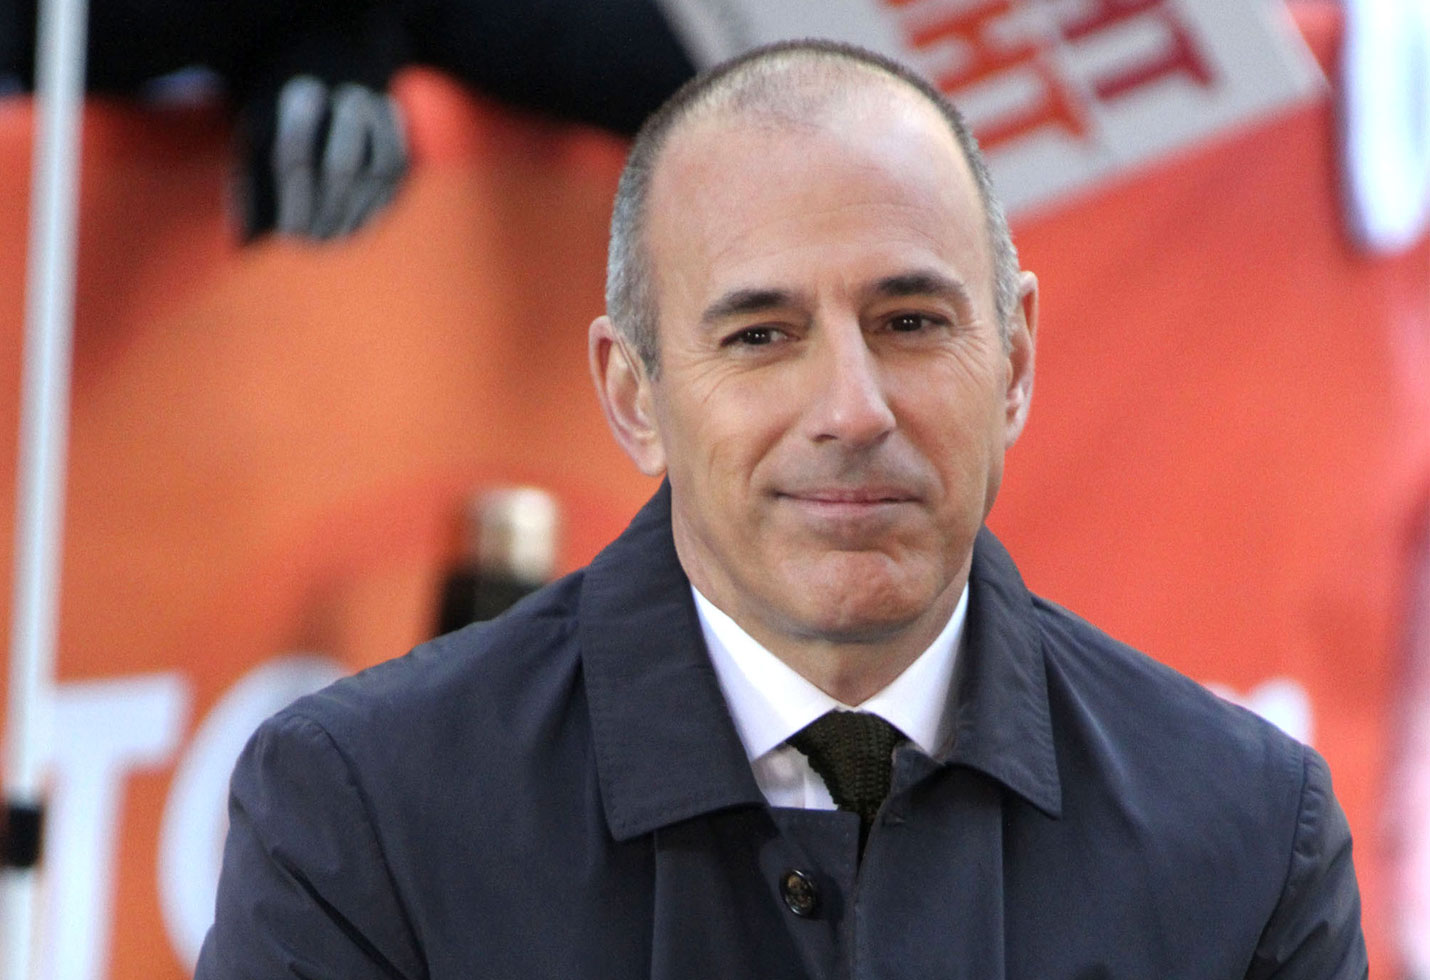 Inside Matt Lauer's Life One Year After His TV Downfall